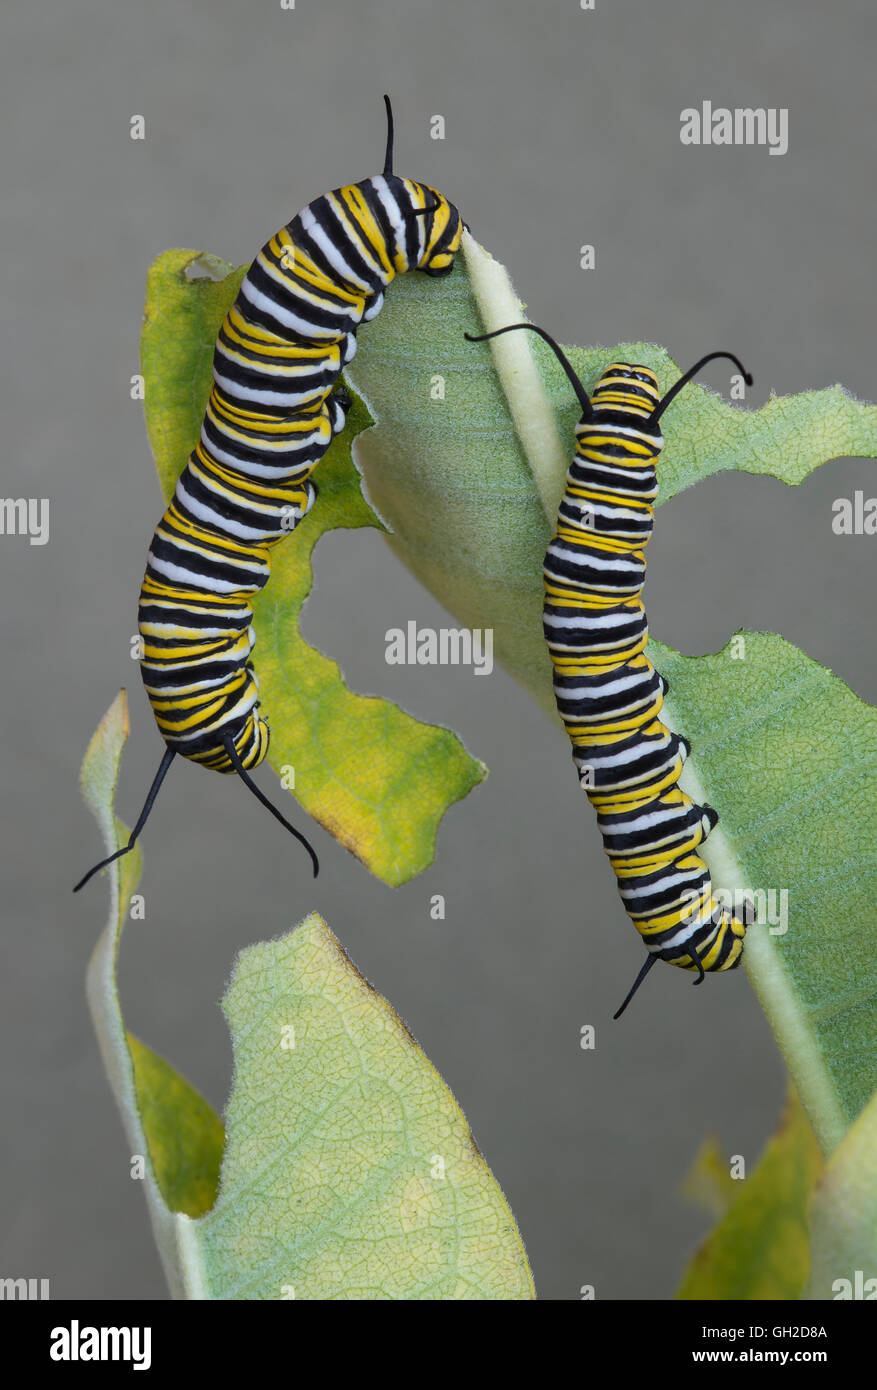 Monarch Butterfly caterpillars Danaus plexippus feeding on Common Milkweed Asclepias syriaca E USA - Stock Image